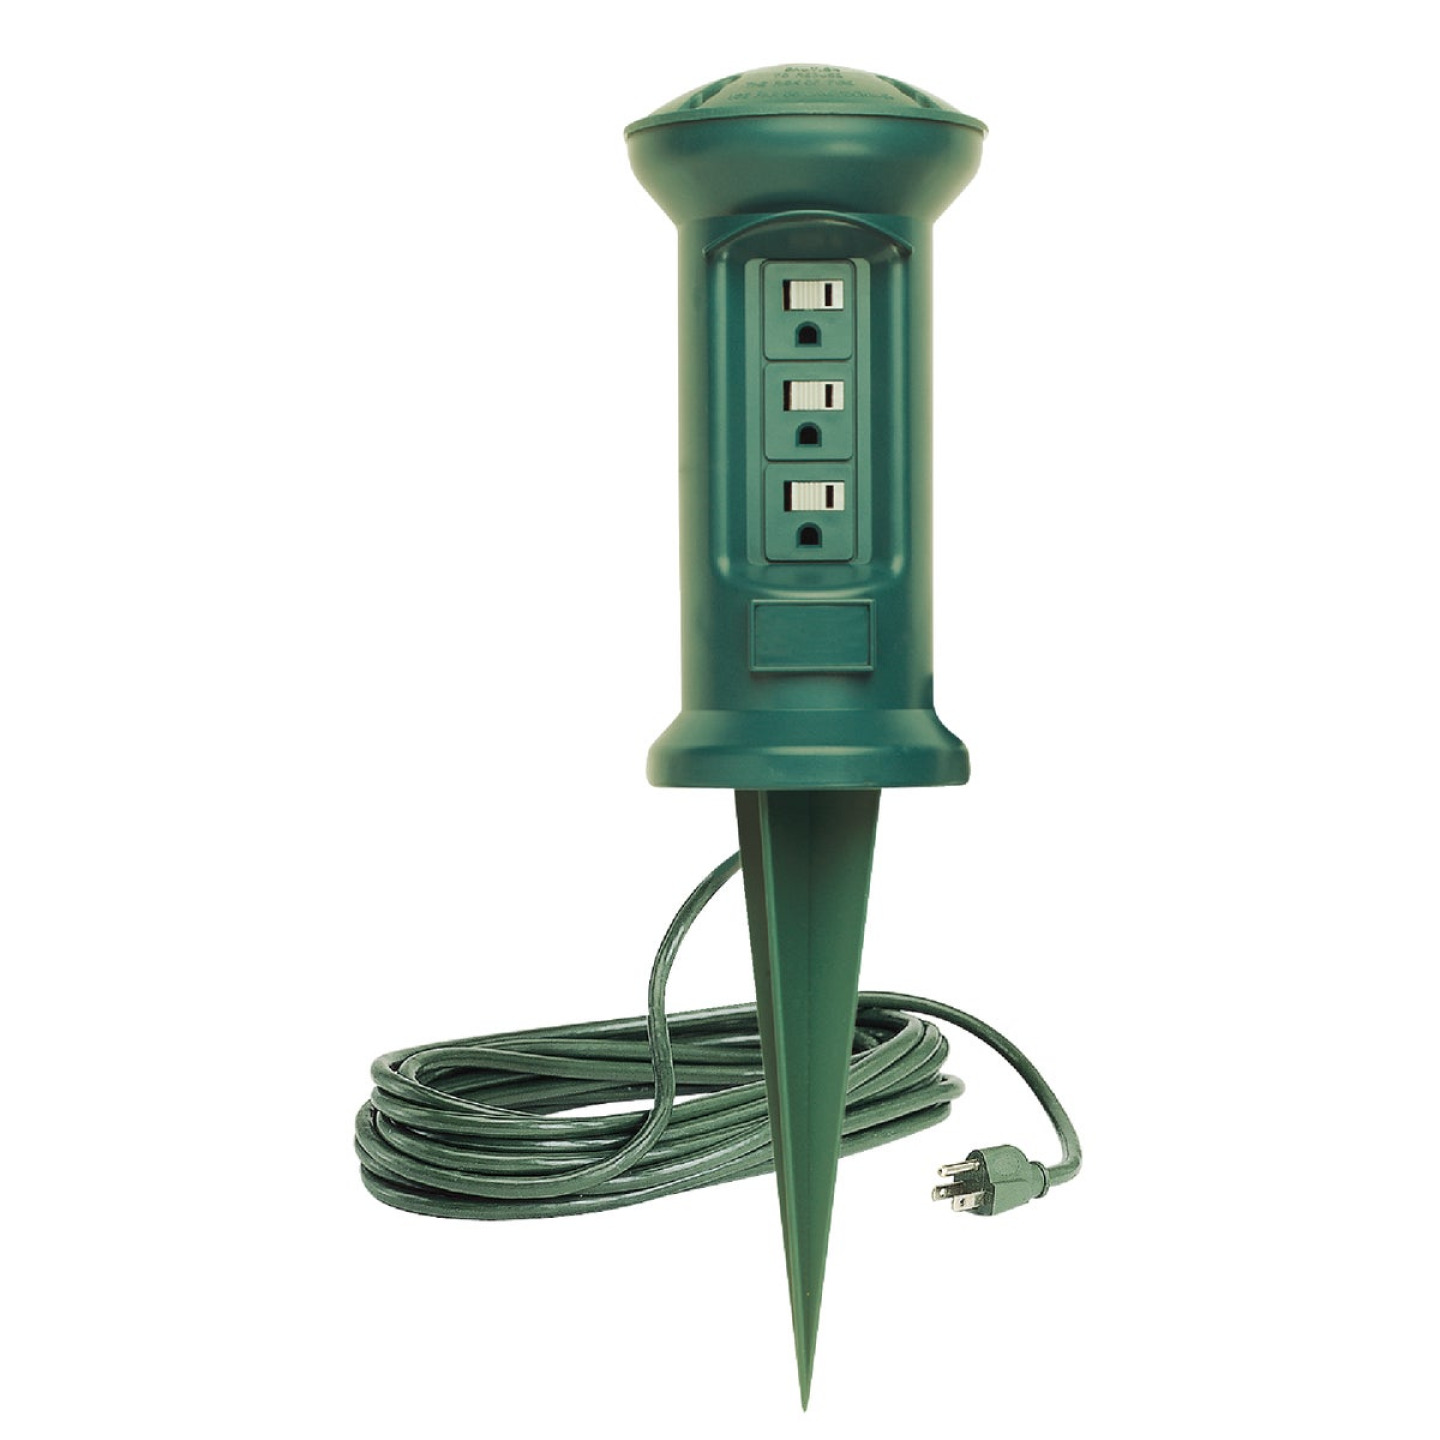 Do it 3-Outlet 13A Outdoor Power Stake with 15 Ft. Cord Image 1